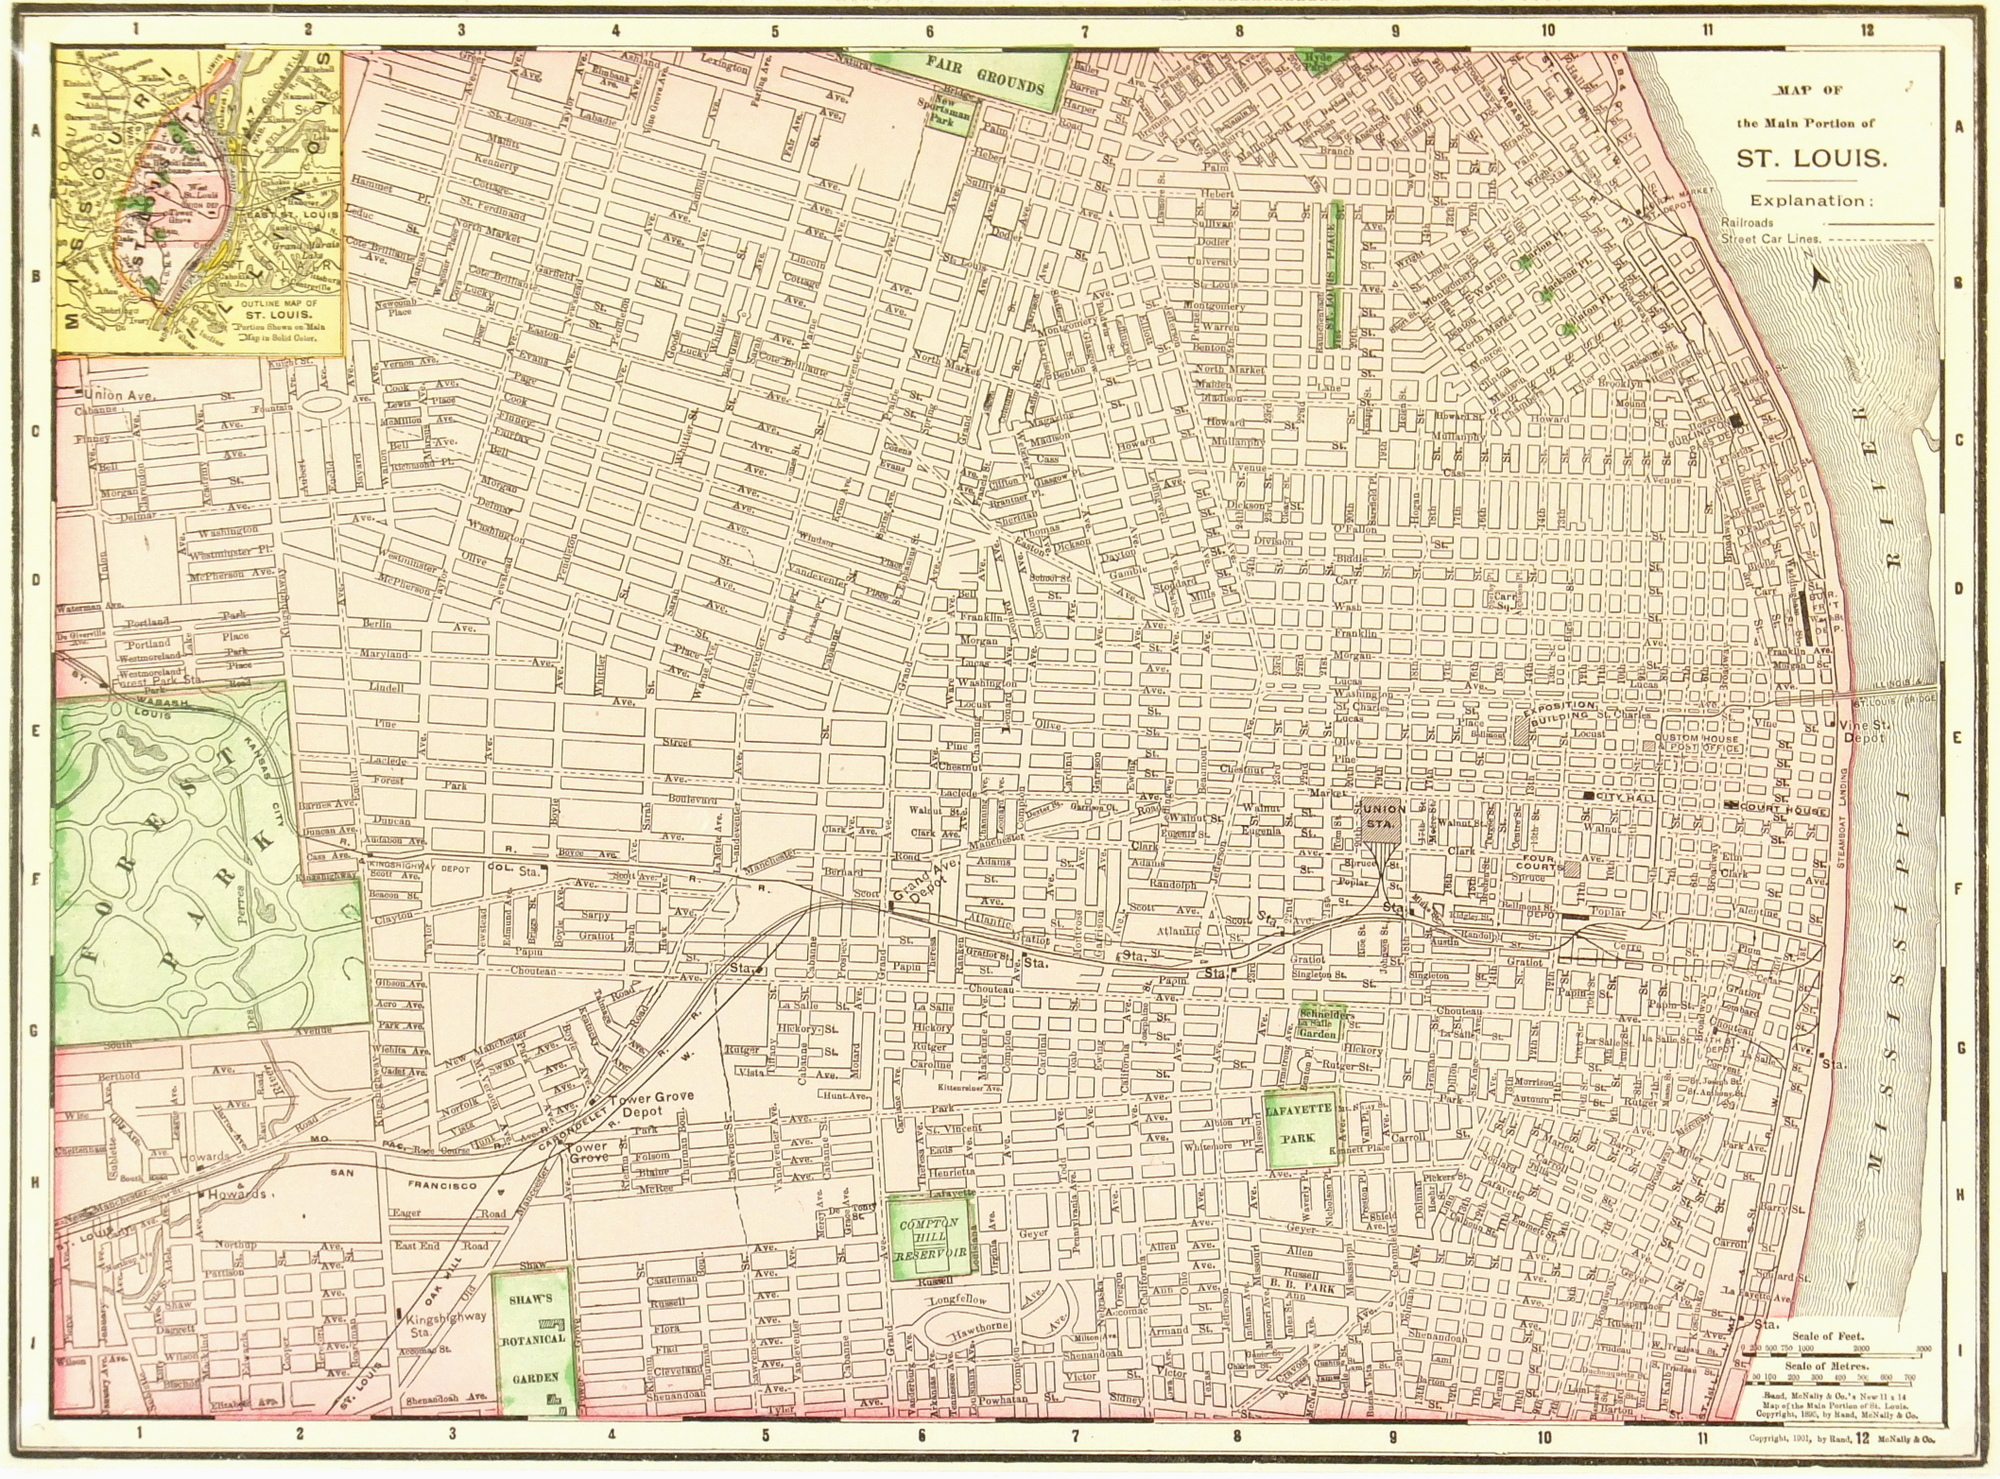 St. Louis, Missouri Map, 1901-main-7636K